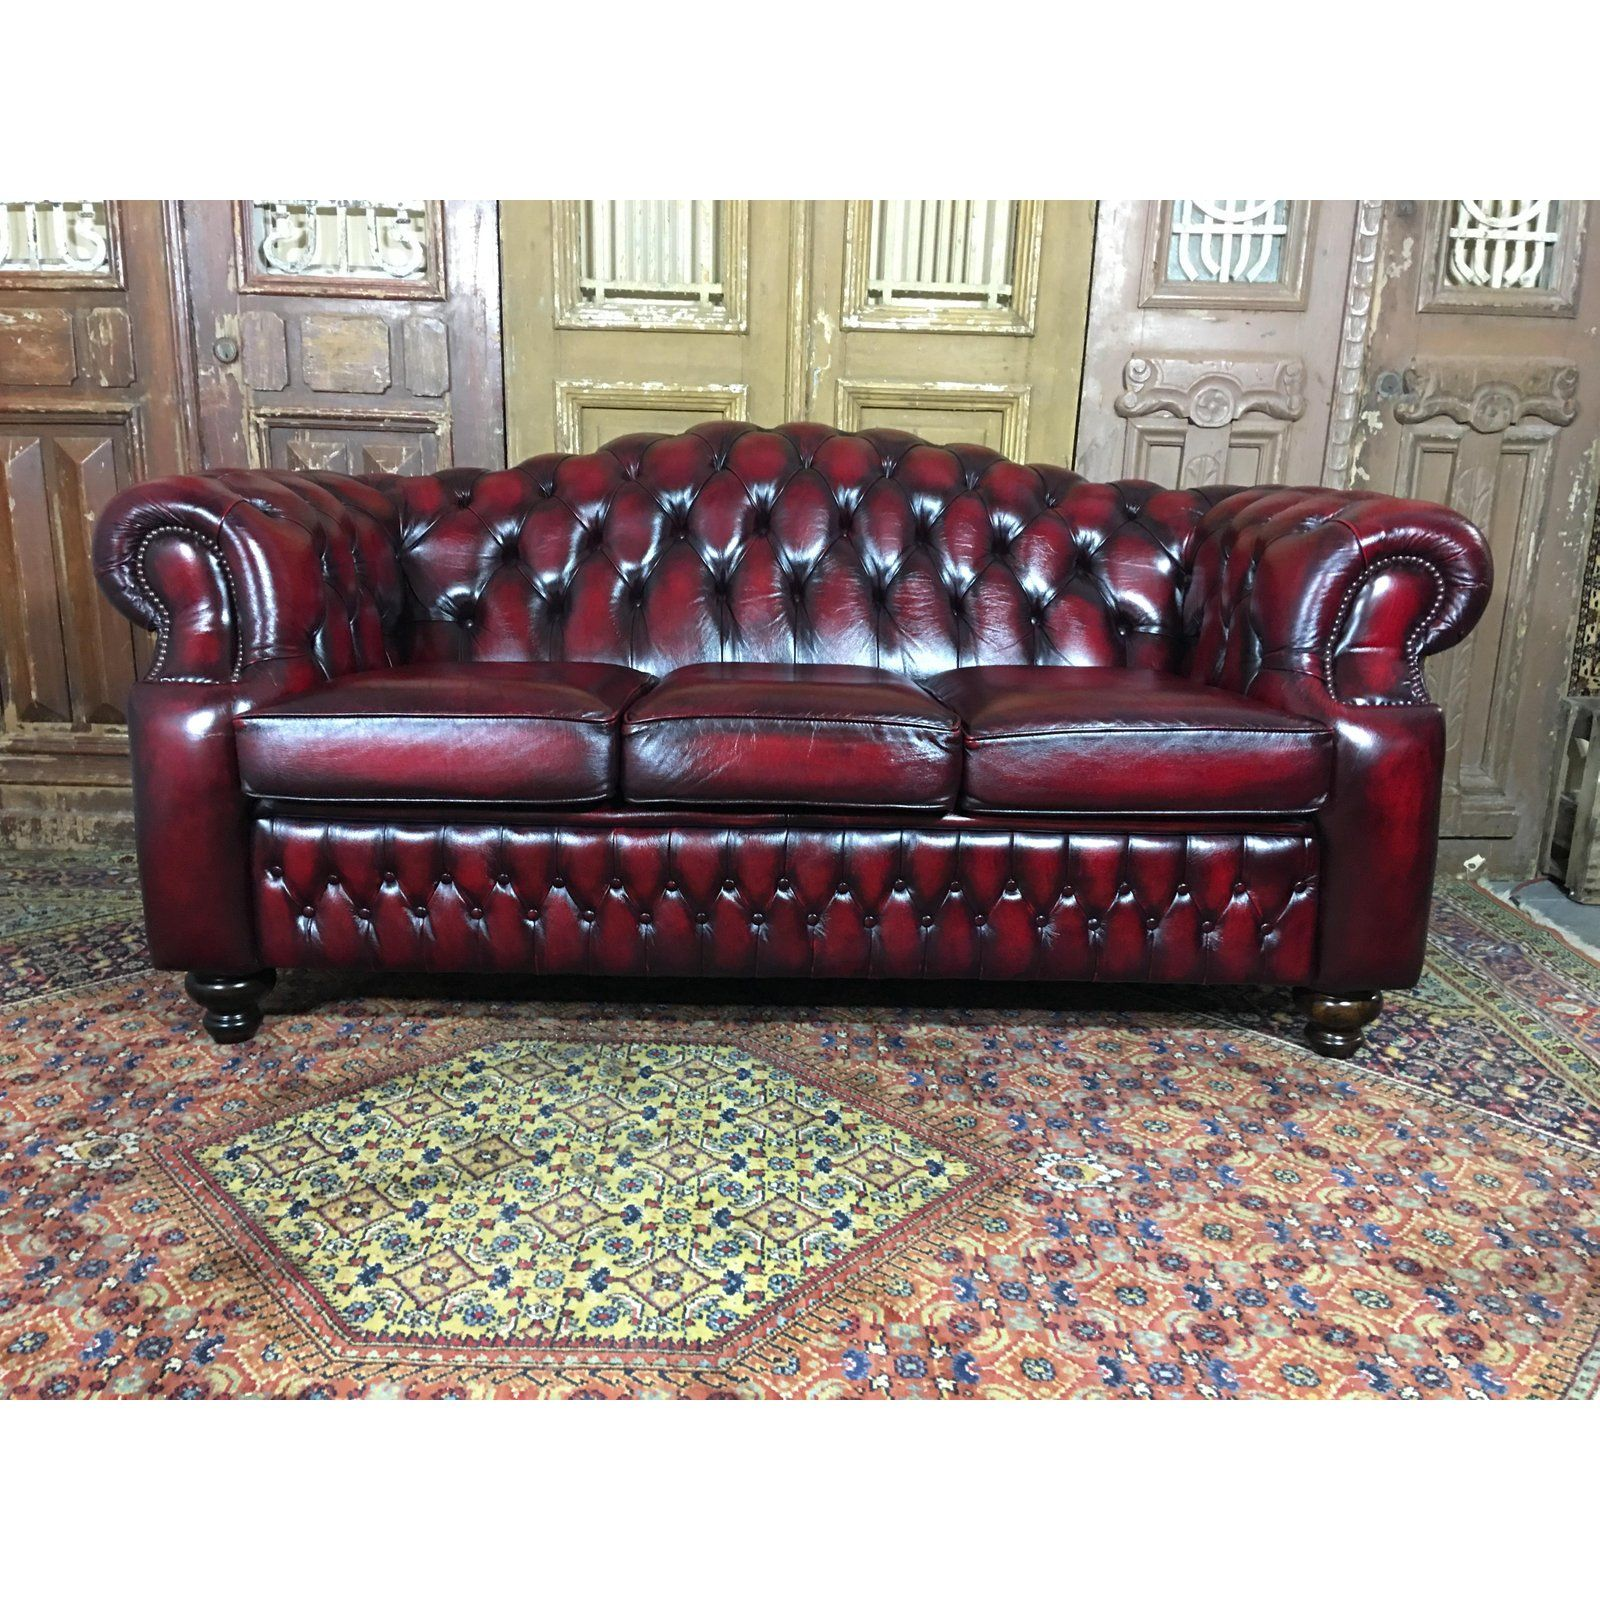 Vintage 20th Century English Traditional Oxblood Leather Chesterfield 3 Seat Sofa Chairis In 2020 Leather Chesterfield Vintage Sofa Vintage Leather Chesterfield Sofa